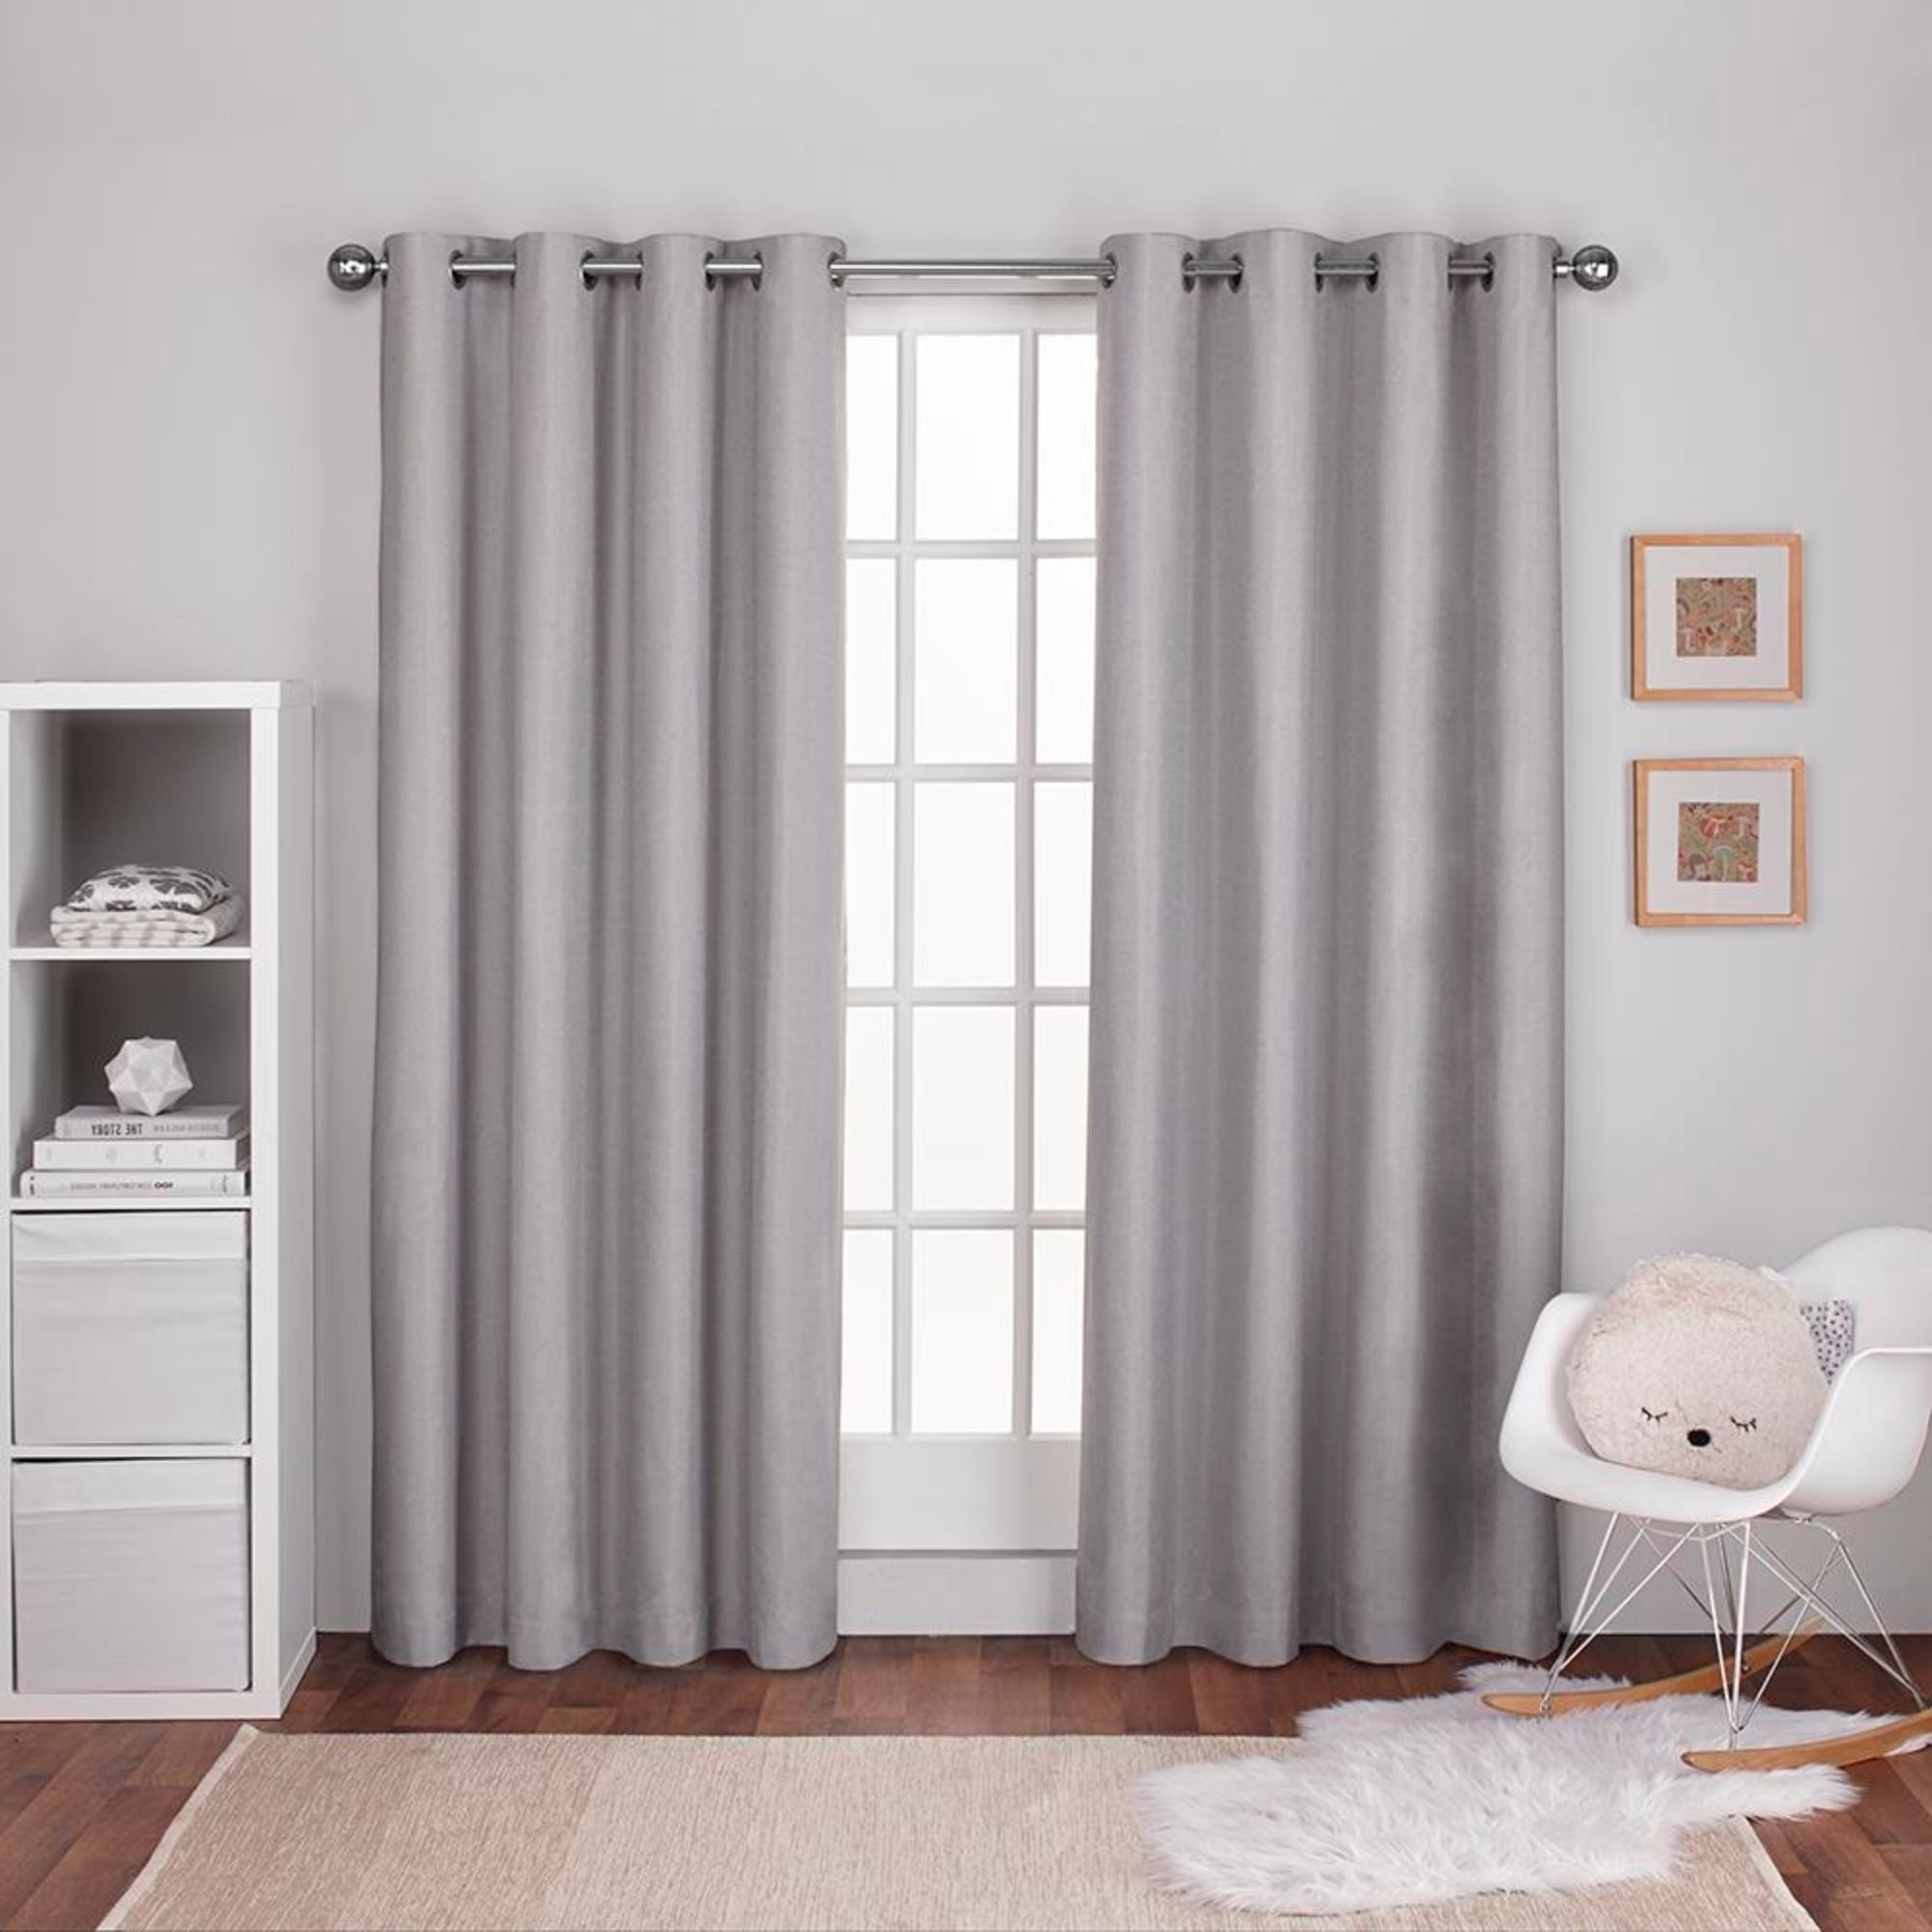 Favorite Ati Home Linen Thermal Woven Blackout Grommet Top Curtain Panel Pair In Thermal Woven Blackout Grommet Top Curtain Panel Pairs (Gallery 10 of 20)